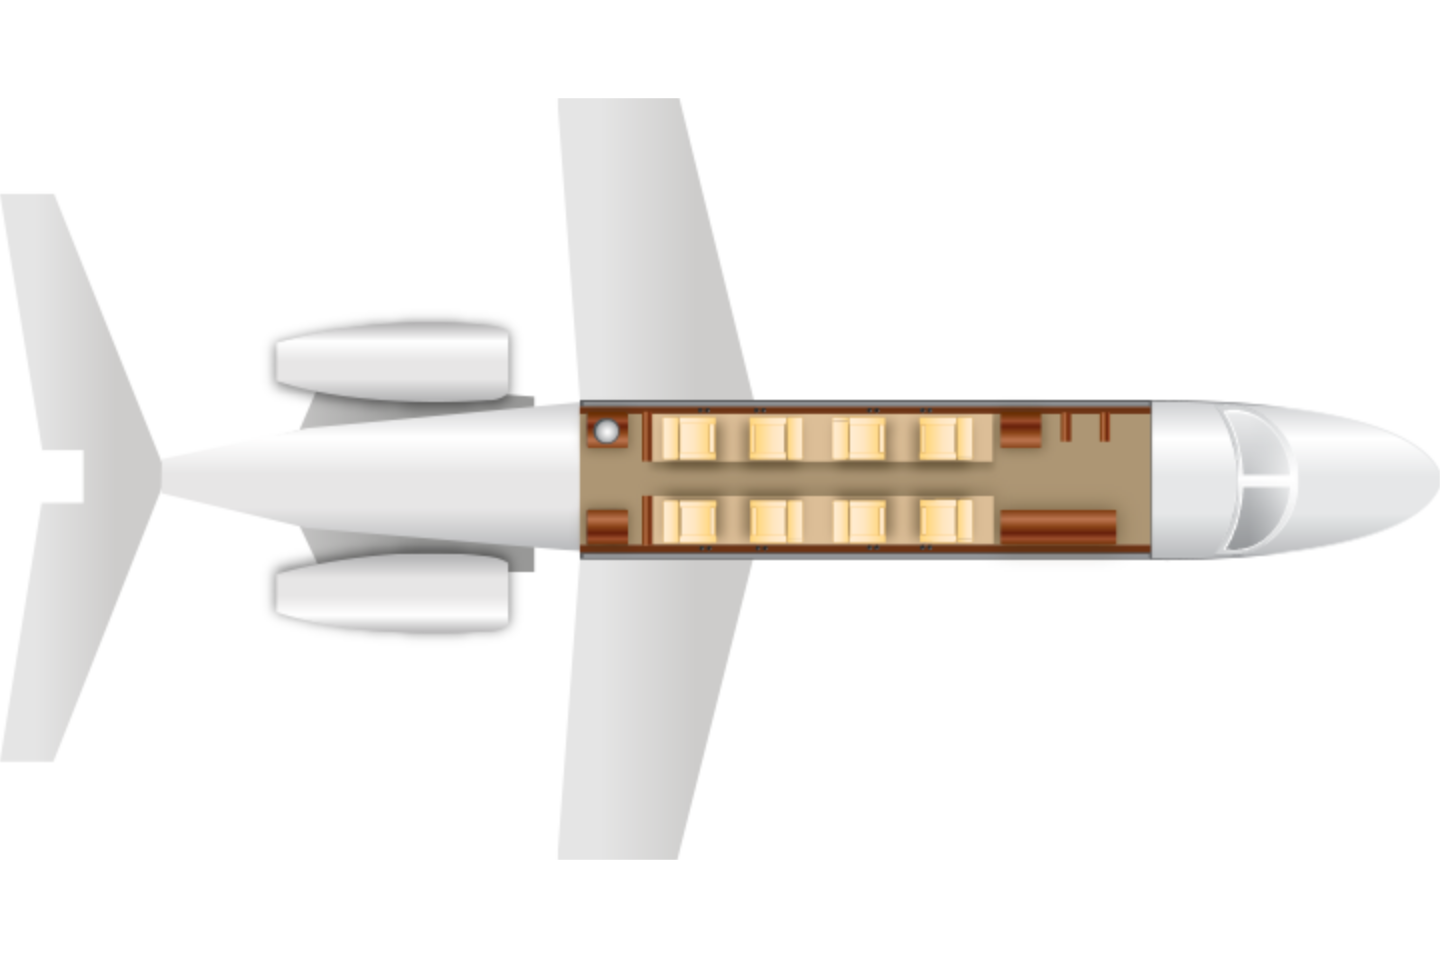 citation-sovereign-transparent-1412618975.png Floor Plan View